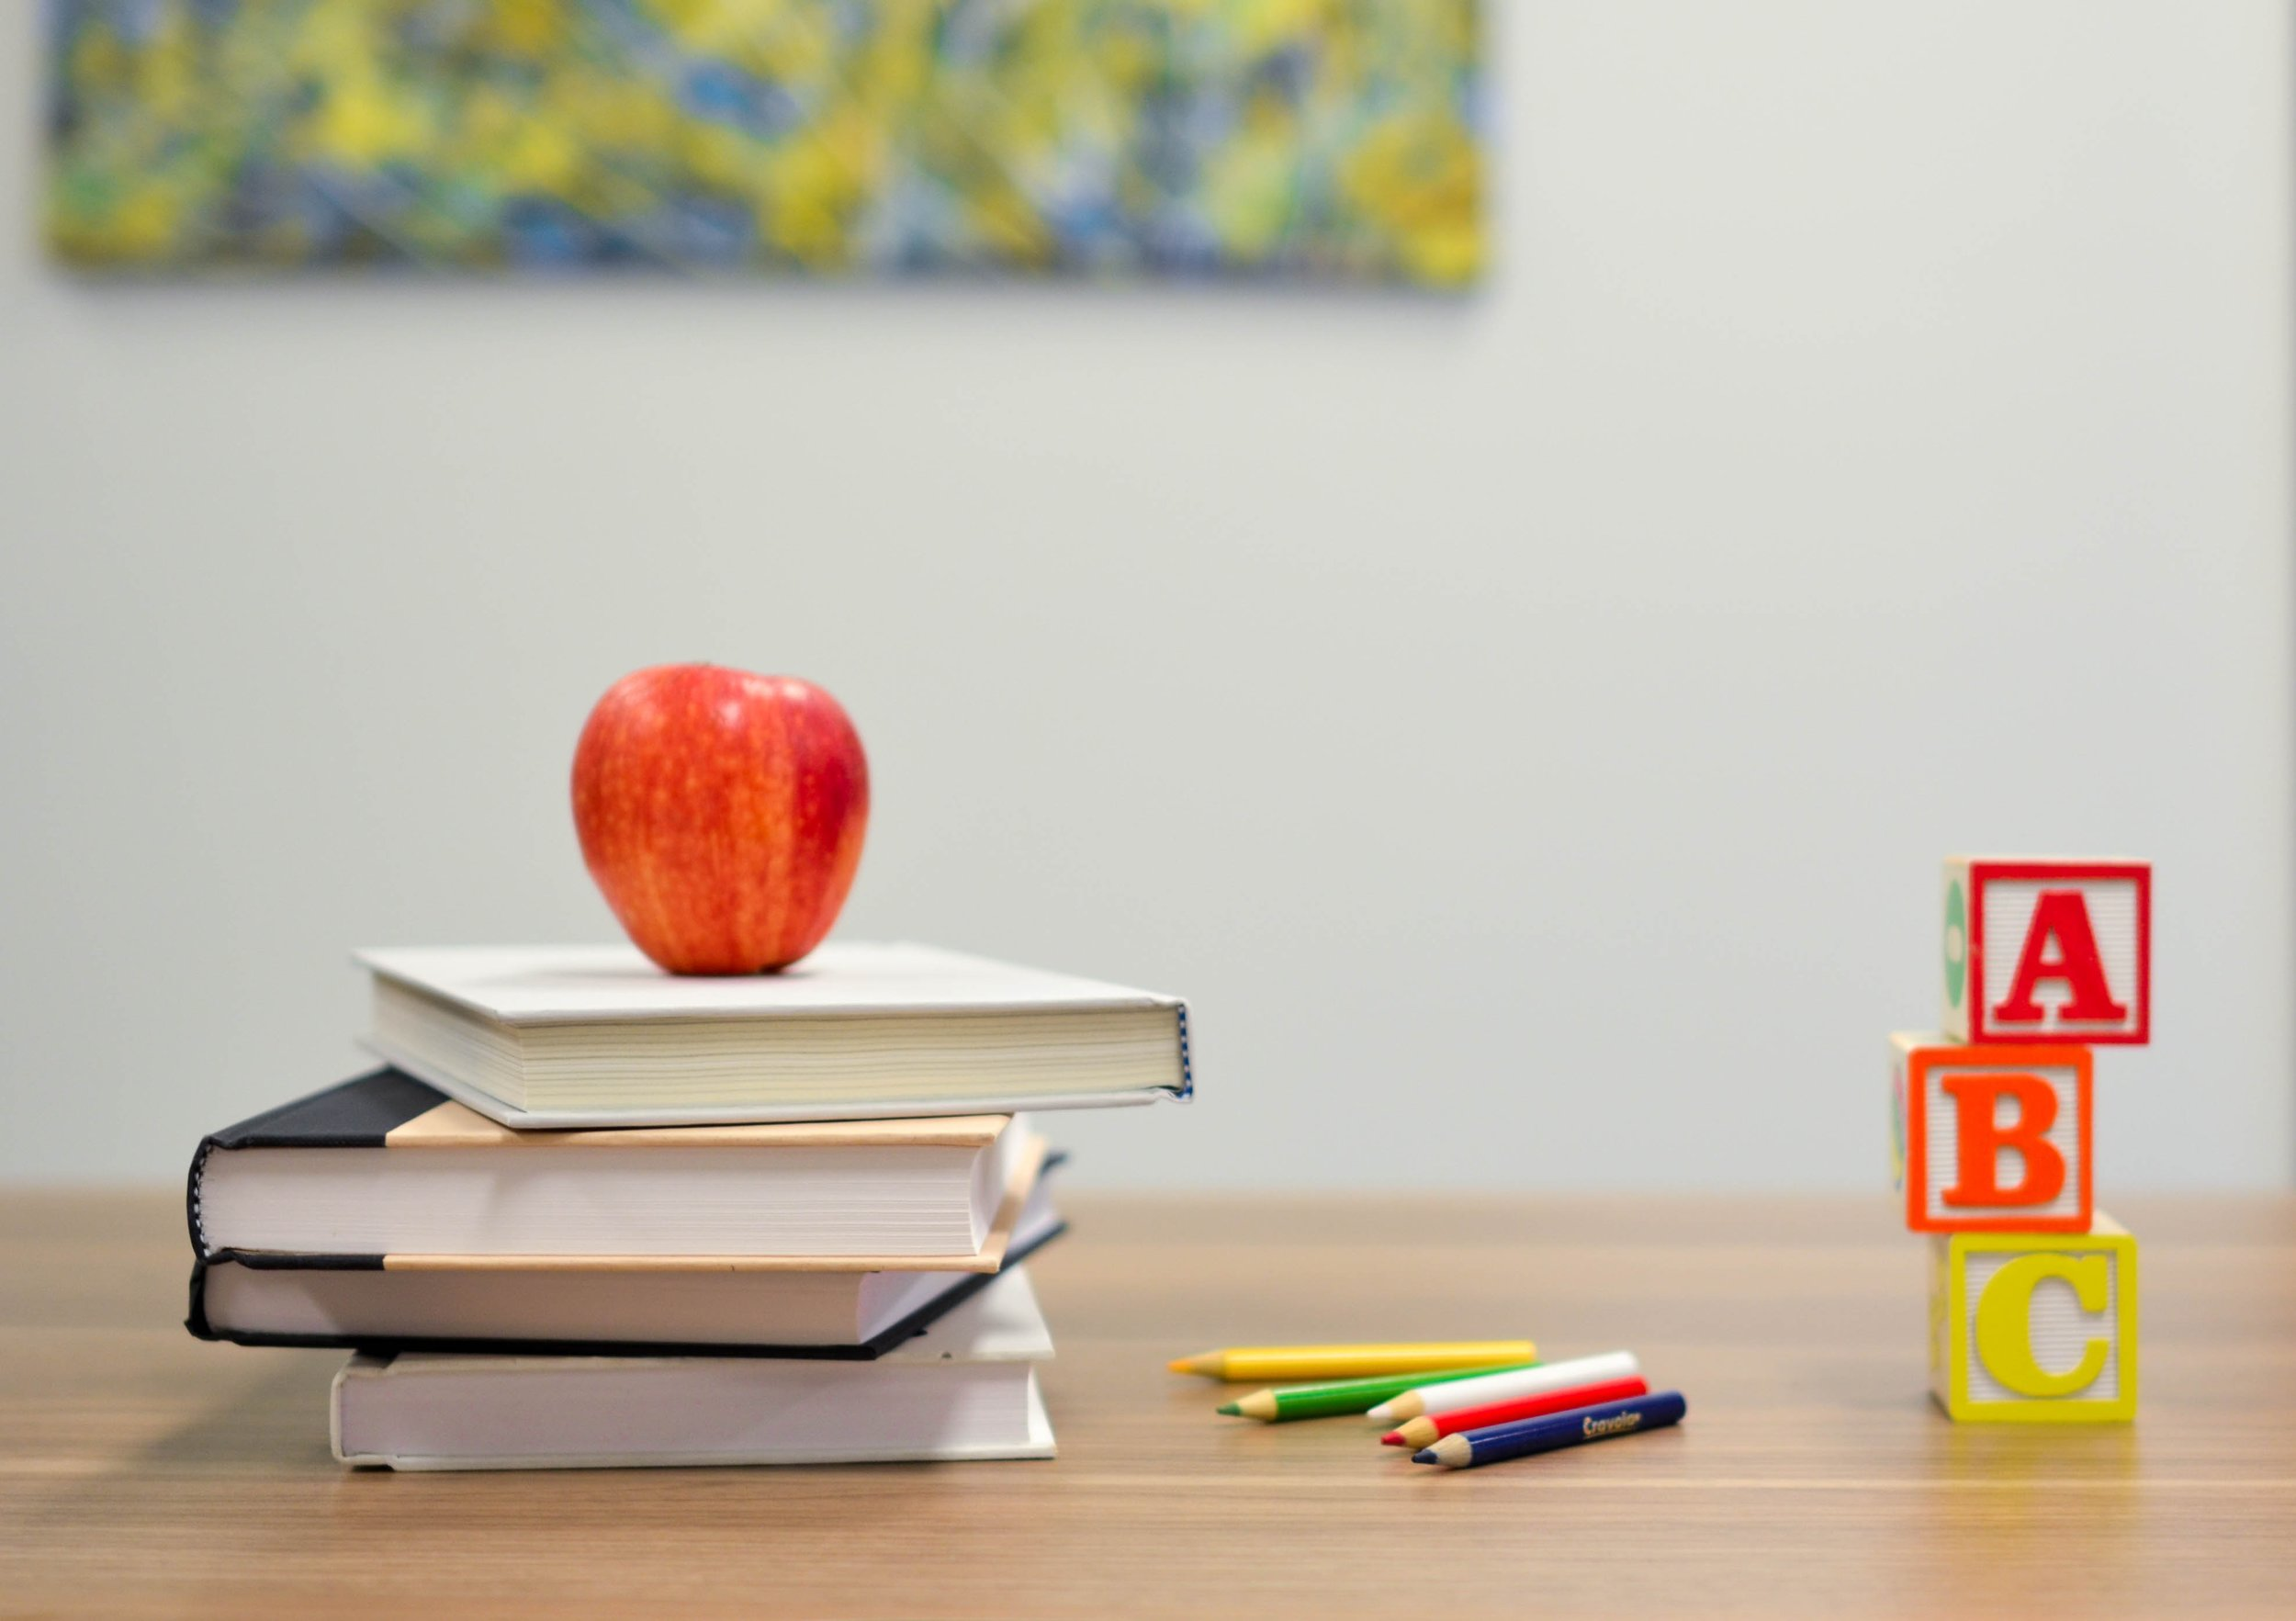 World of Education - To support the investment you make, our service ensures that you are kept up to date with information and feel confident in your role.